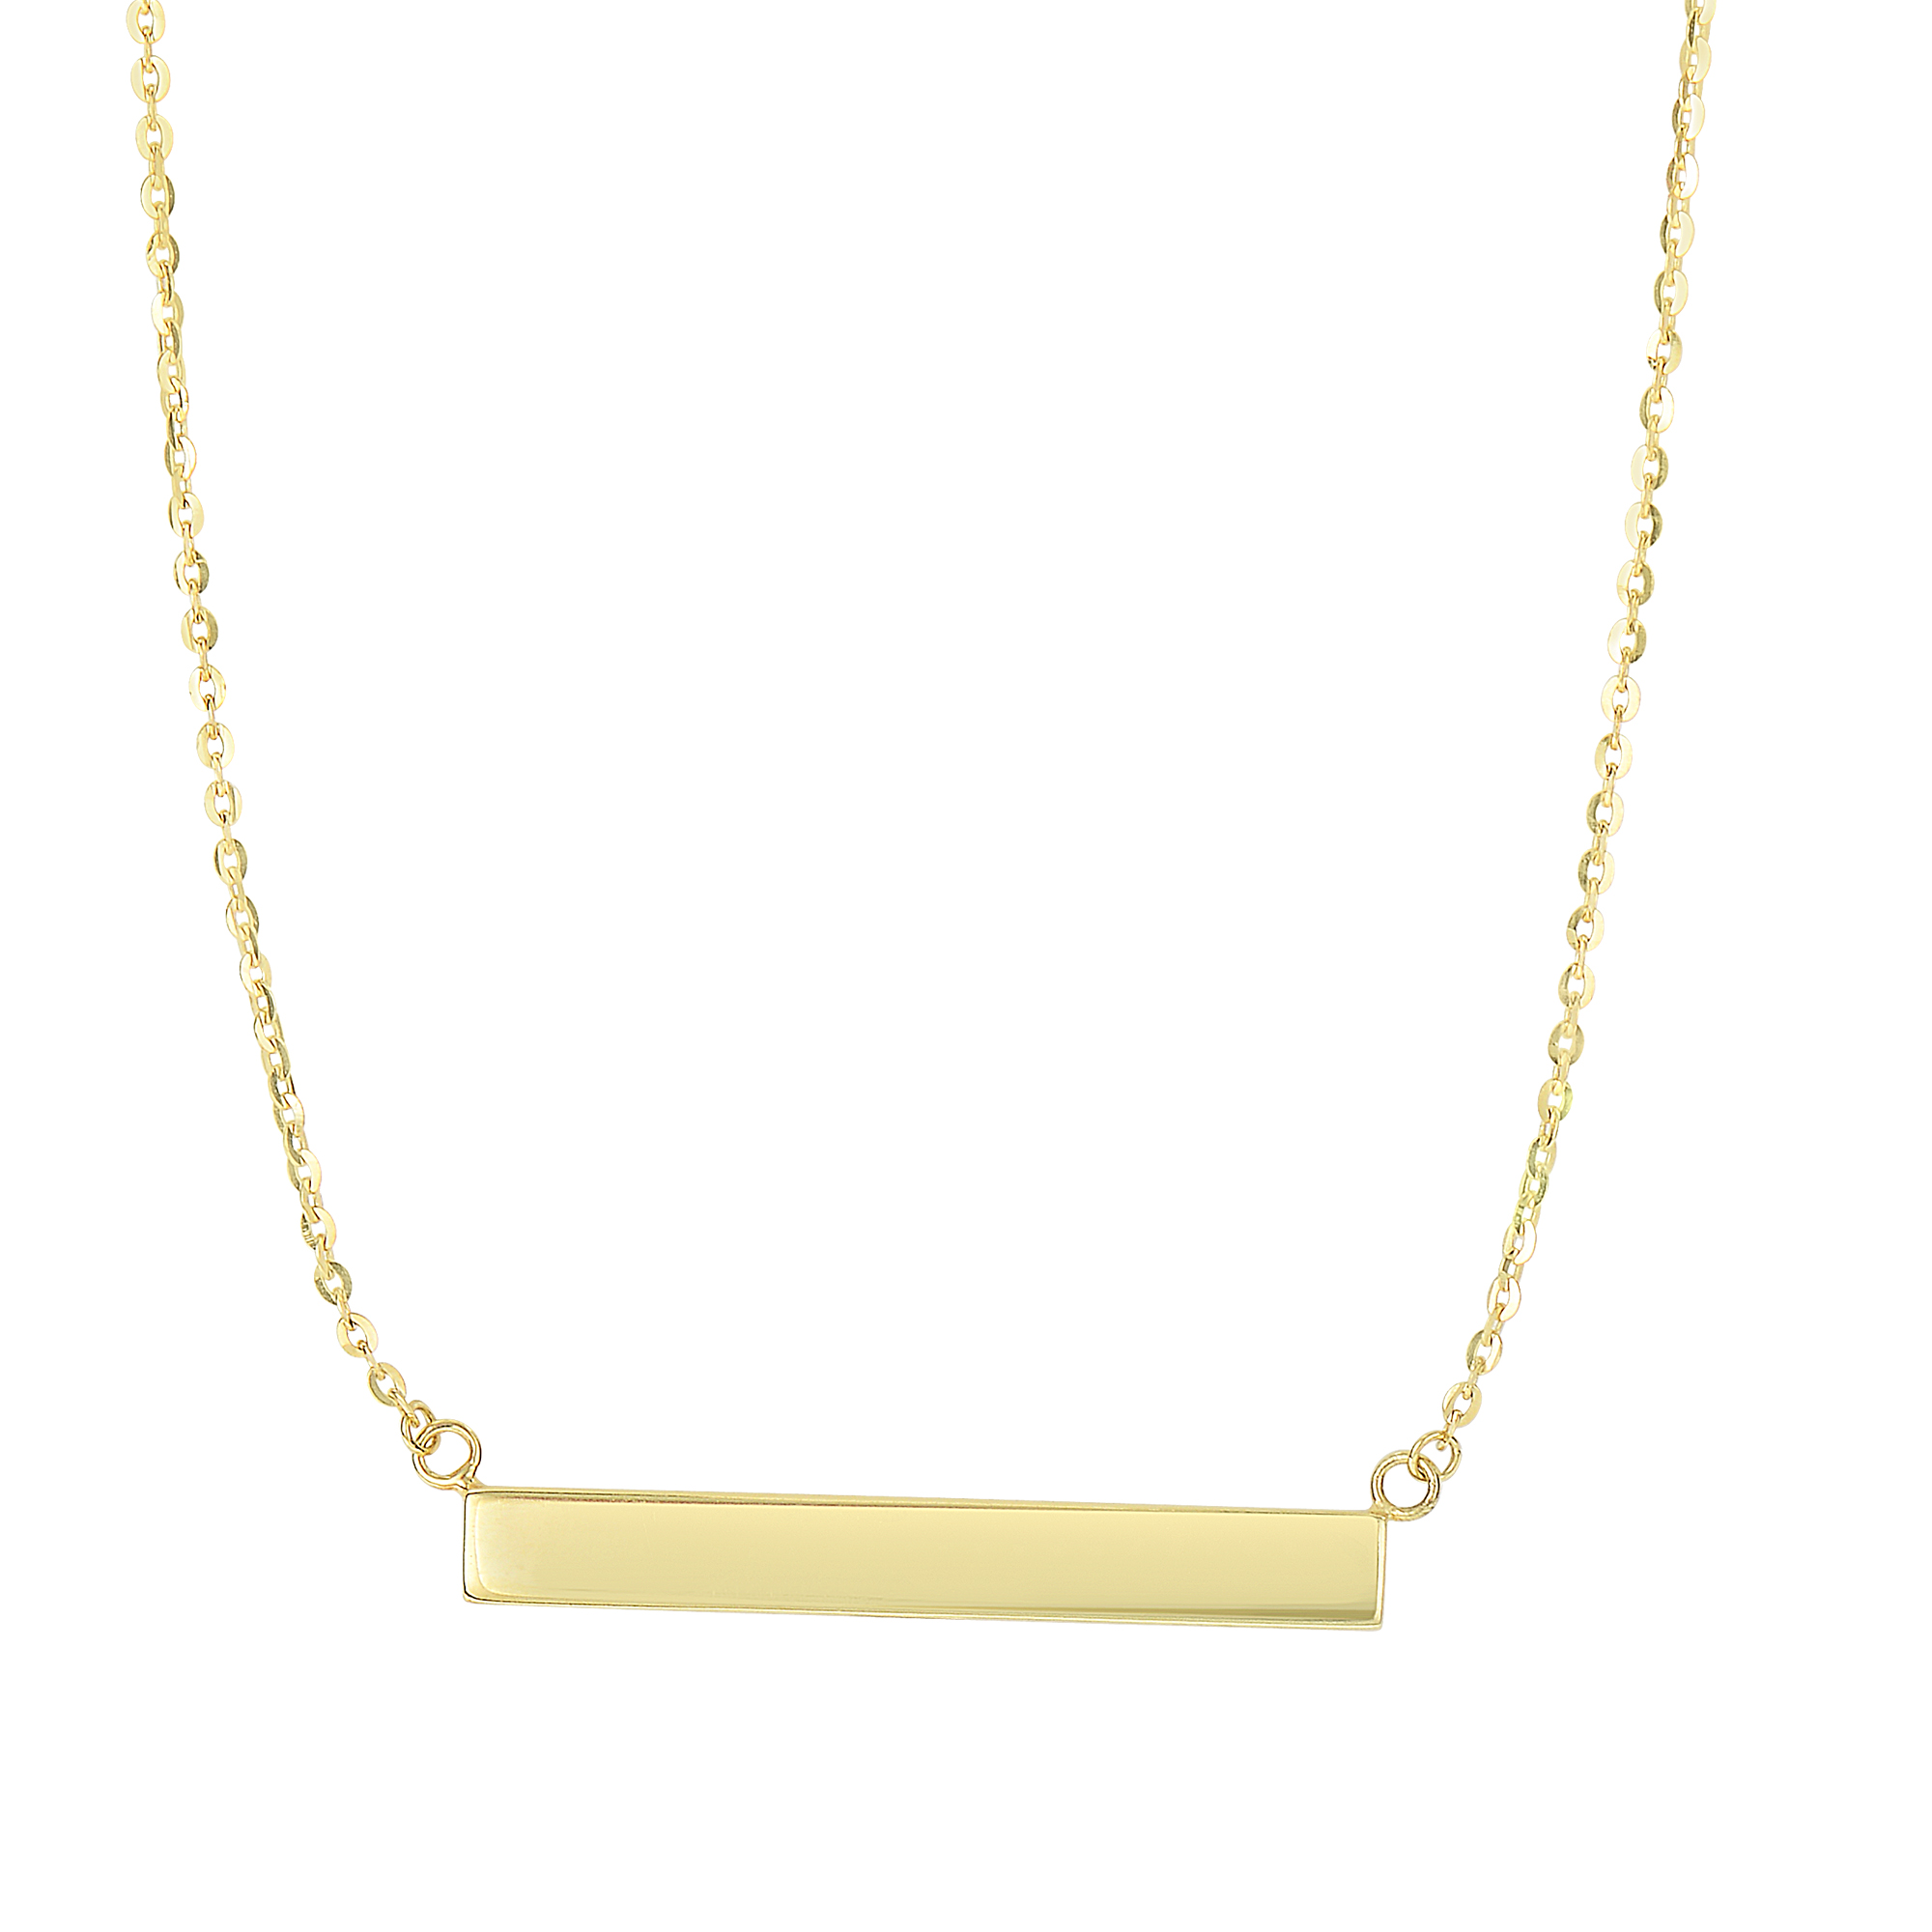 14kt 18 inches Yellow Gold Shiny 4-Station Sideways+1-Hanging 1.7x19.8mm Long Textured Cylinder Shape On 0 .87mm Diamond Cut Cable Chain Type Necklace